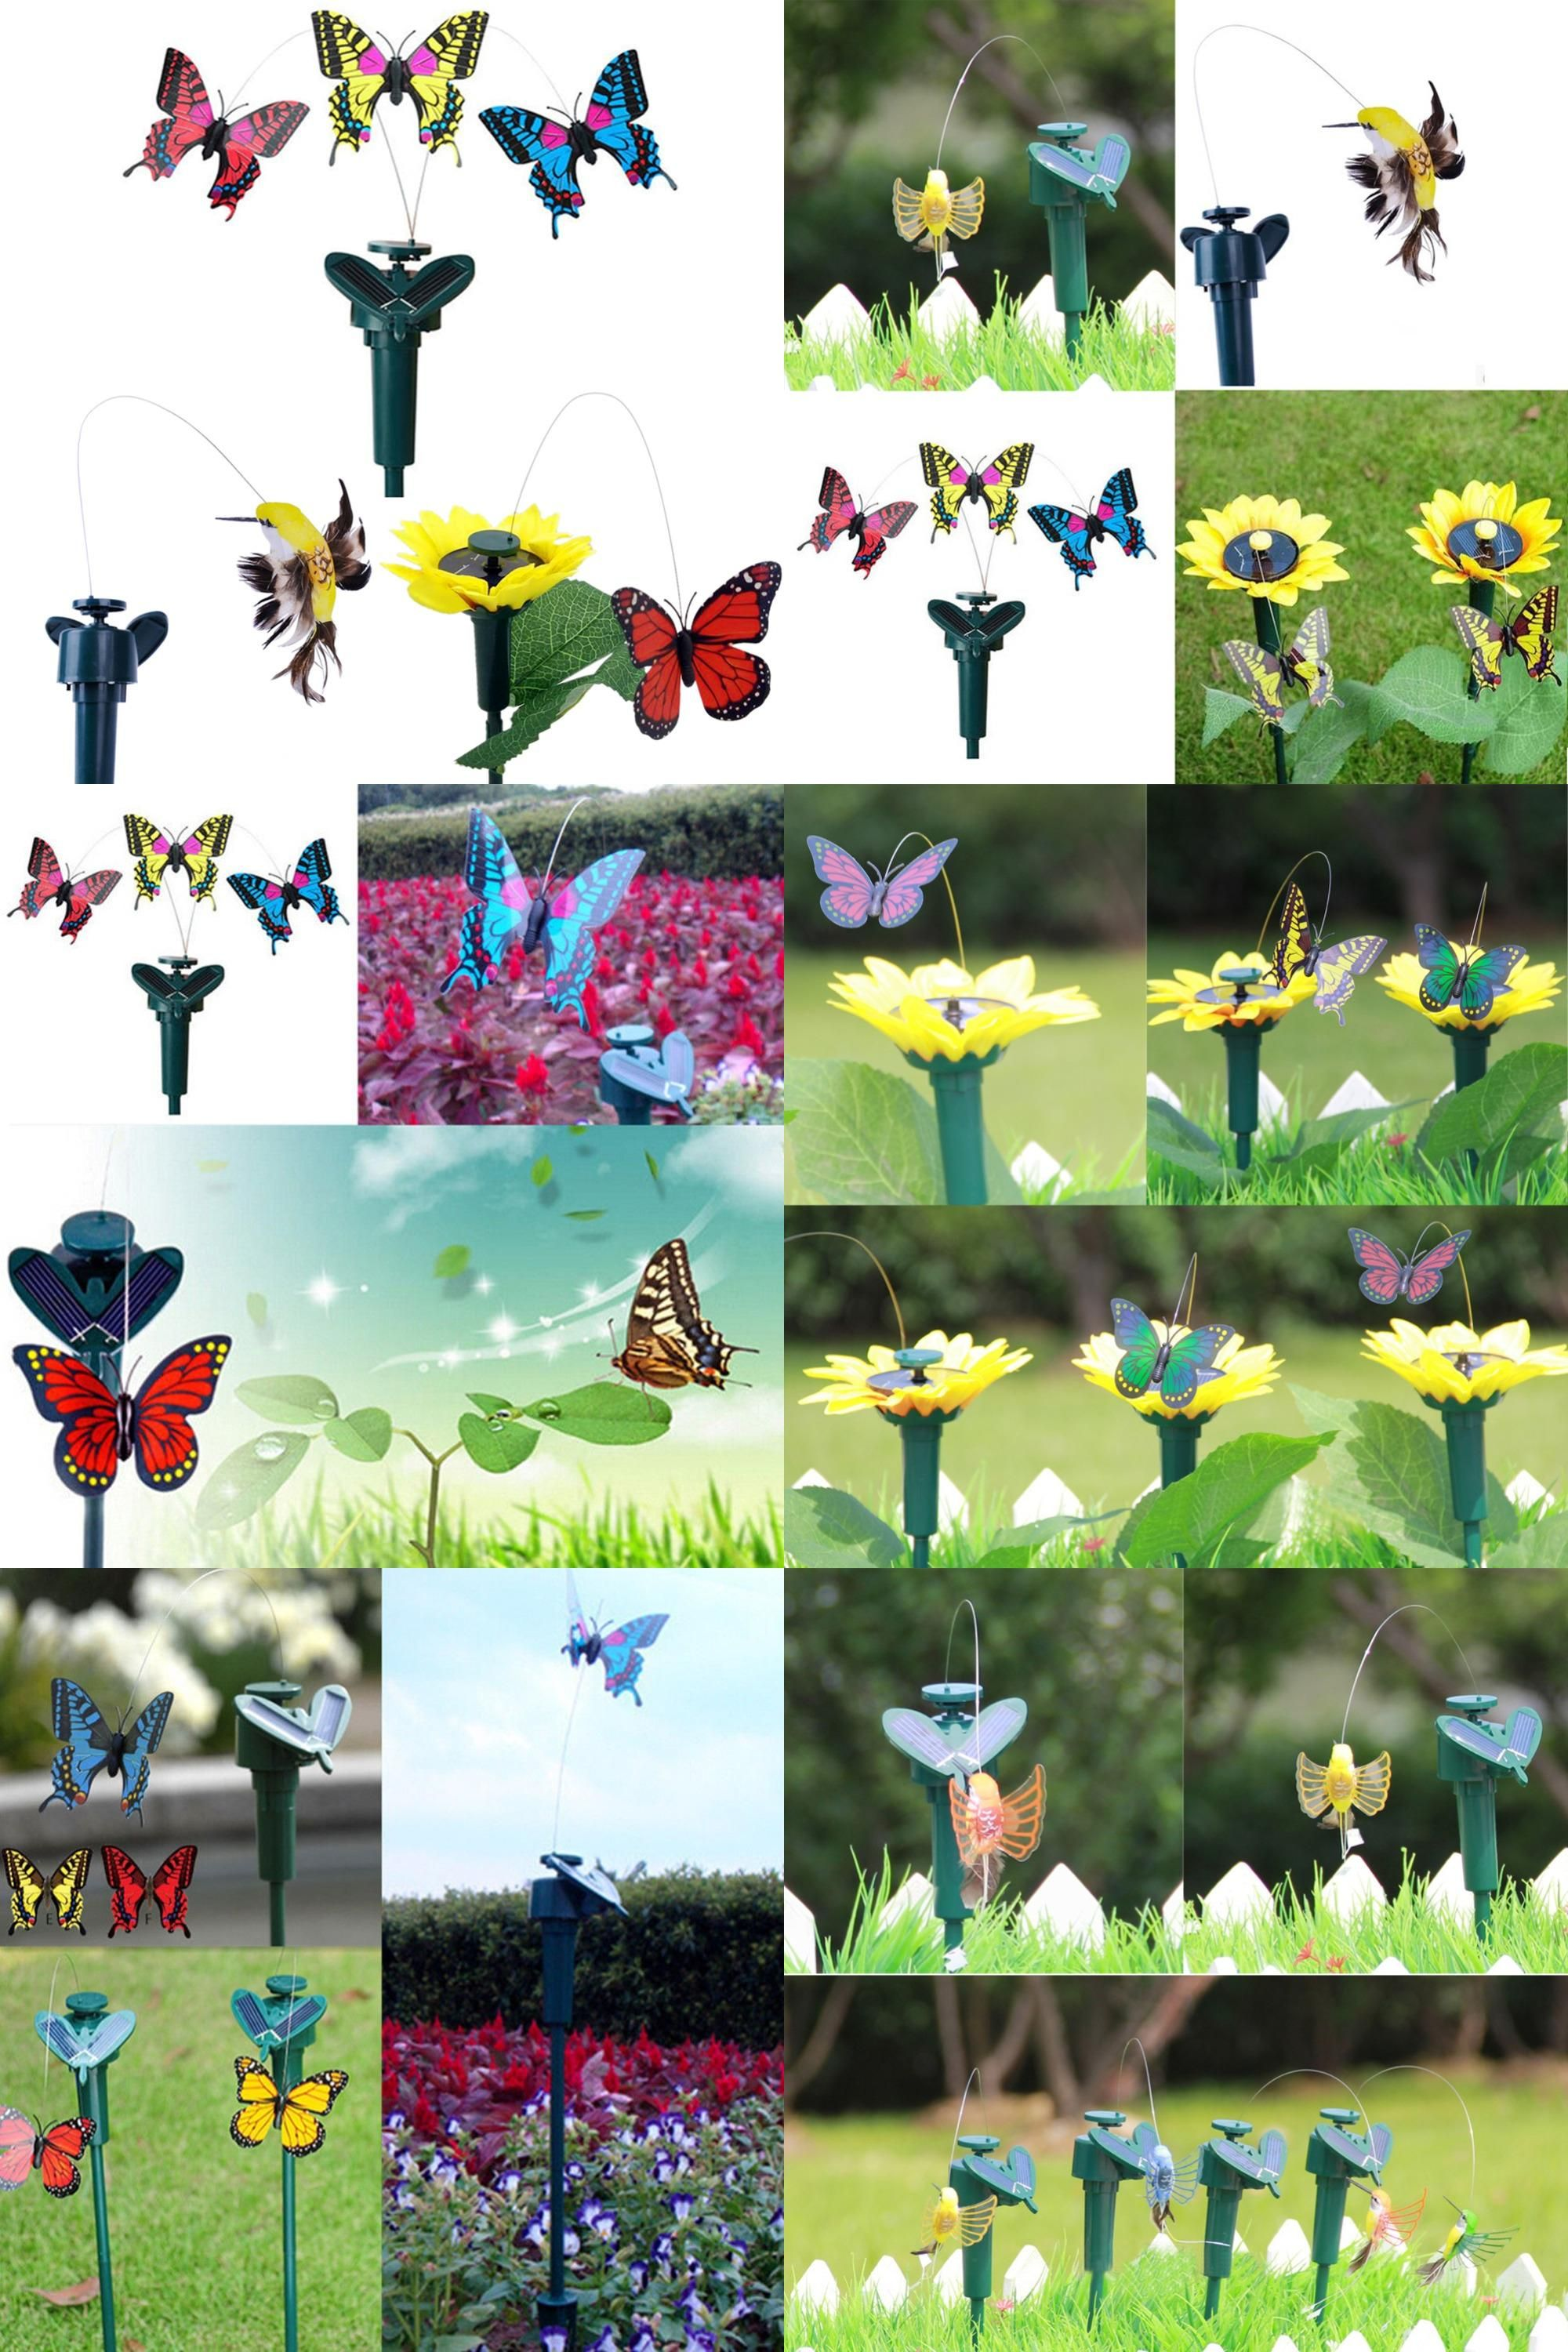 Vibration Solar Power Dancing Flying Fluttering Butterflies Garden Decor NEW